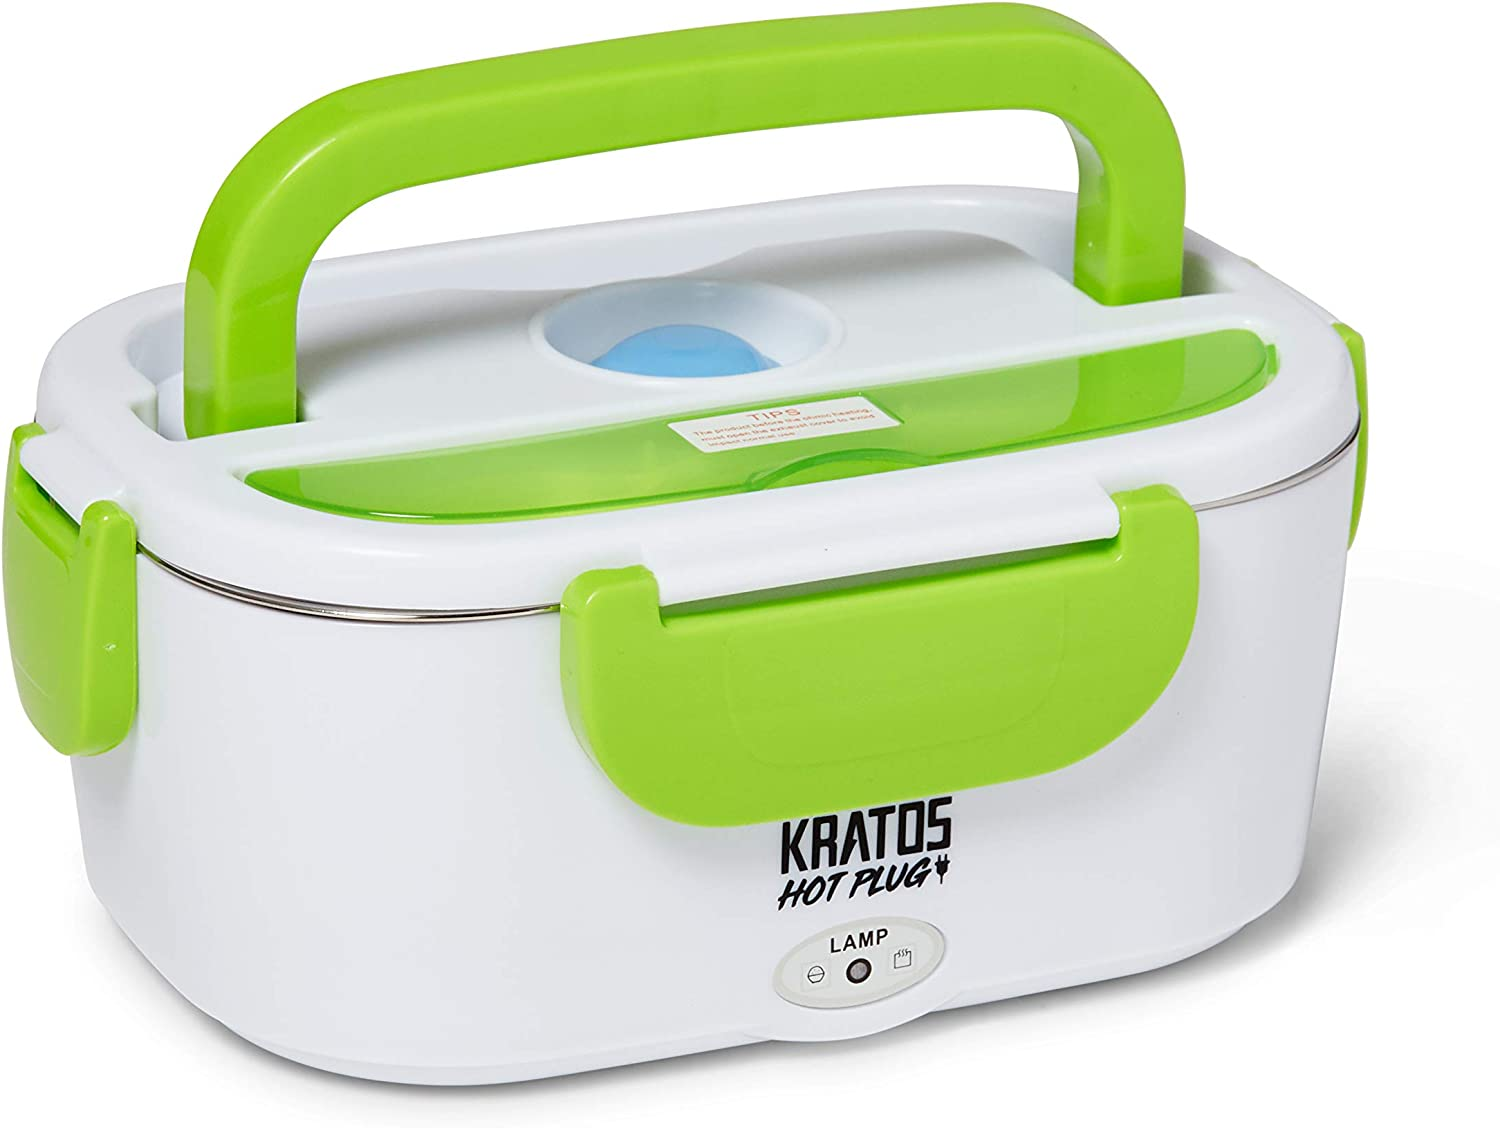 KRATOS HOTPLUG - Premium Mini Hot Box - Traveling/Commuting/Camping/Lunch Containers - Heated Food Container - Road Appliances - Portable Electric Lunchbox - Stainless Steel (Green) Product Name